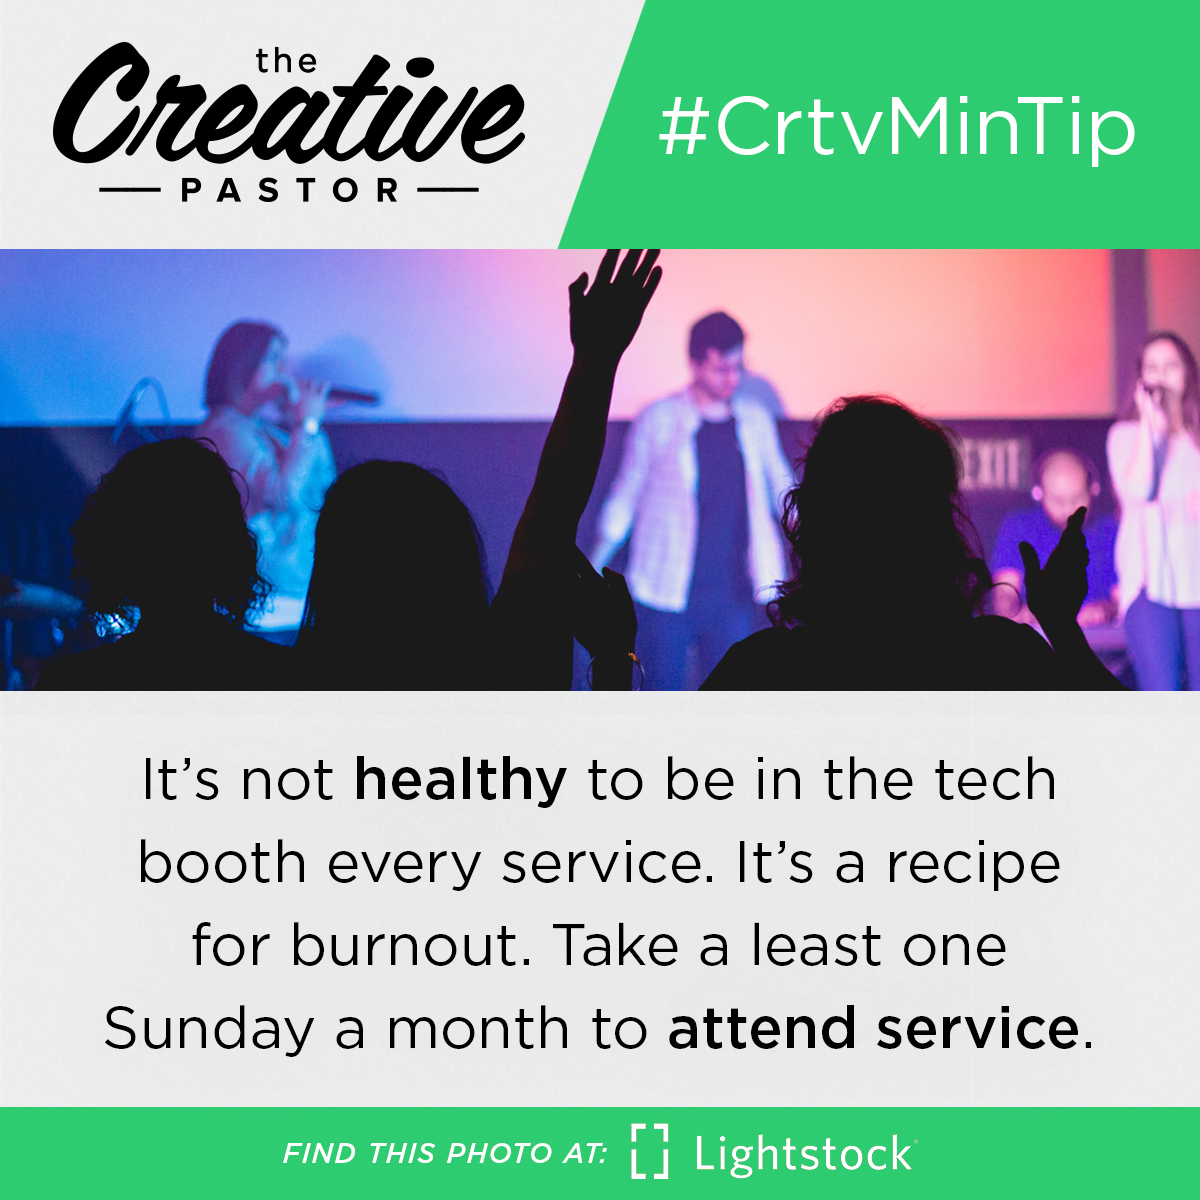 #CrtvMinTip: It's not healthy to be in the tech booth every service. It's a recipe for burnout. Take a least one Sunday a month to attend service.